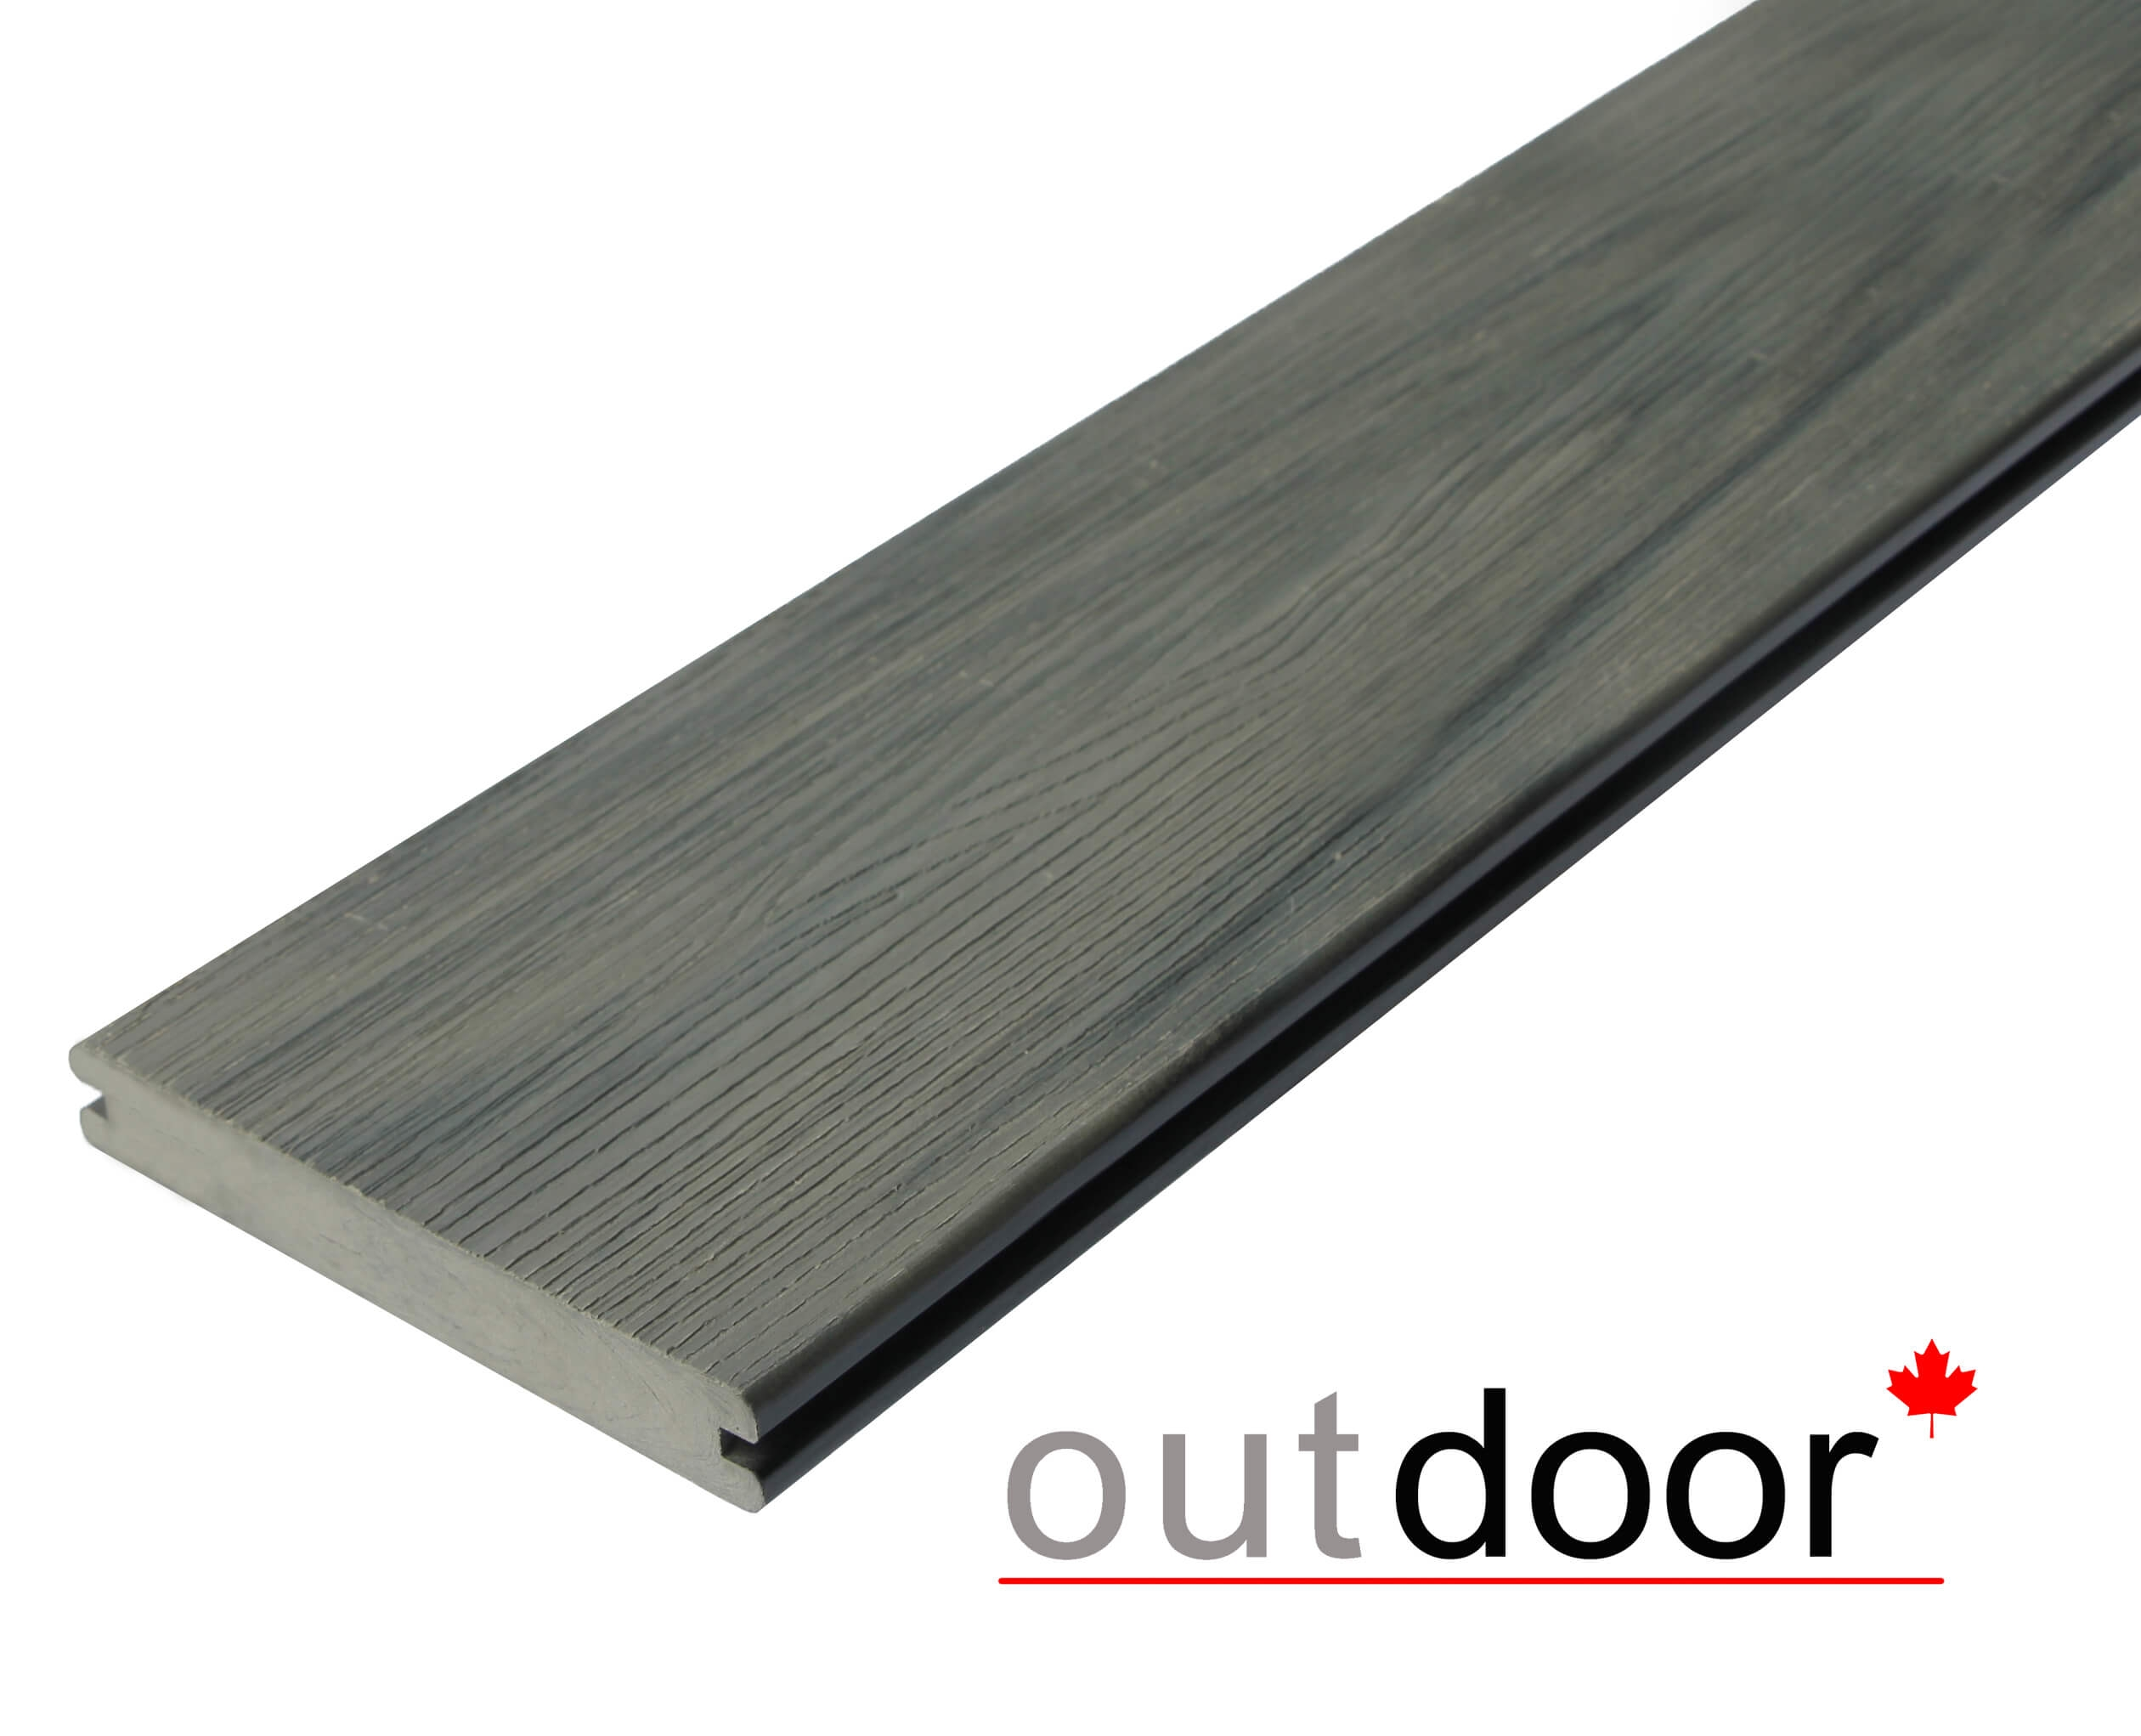 Outdoor 3D STORM GREY